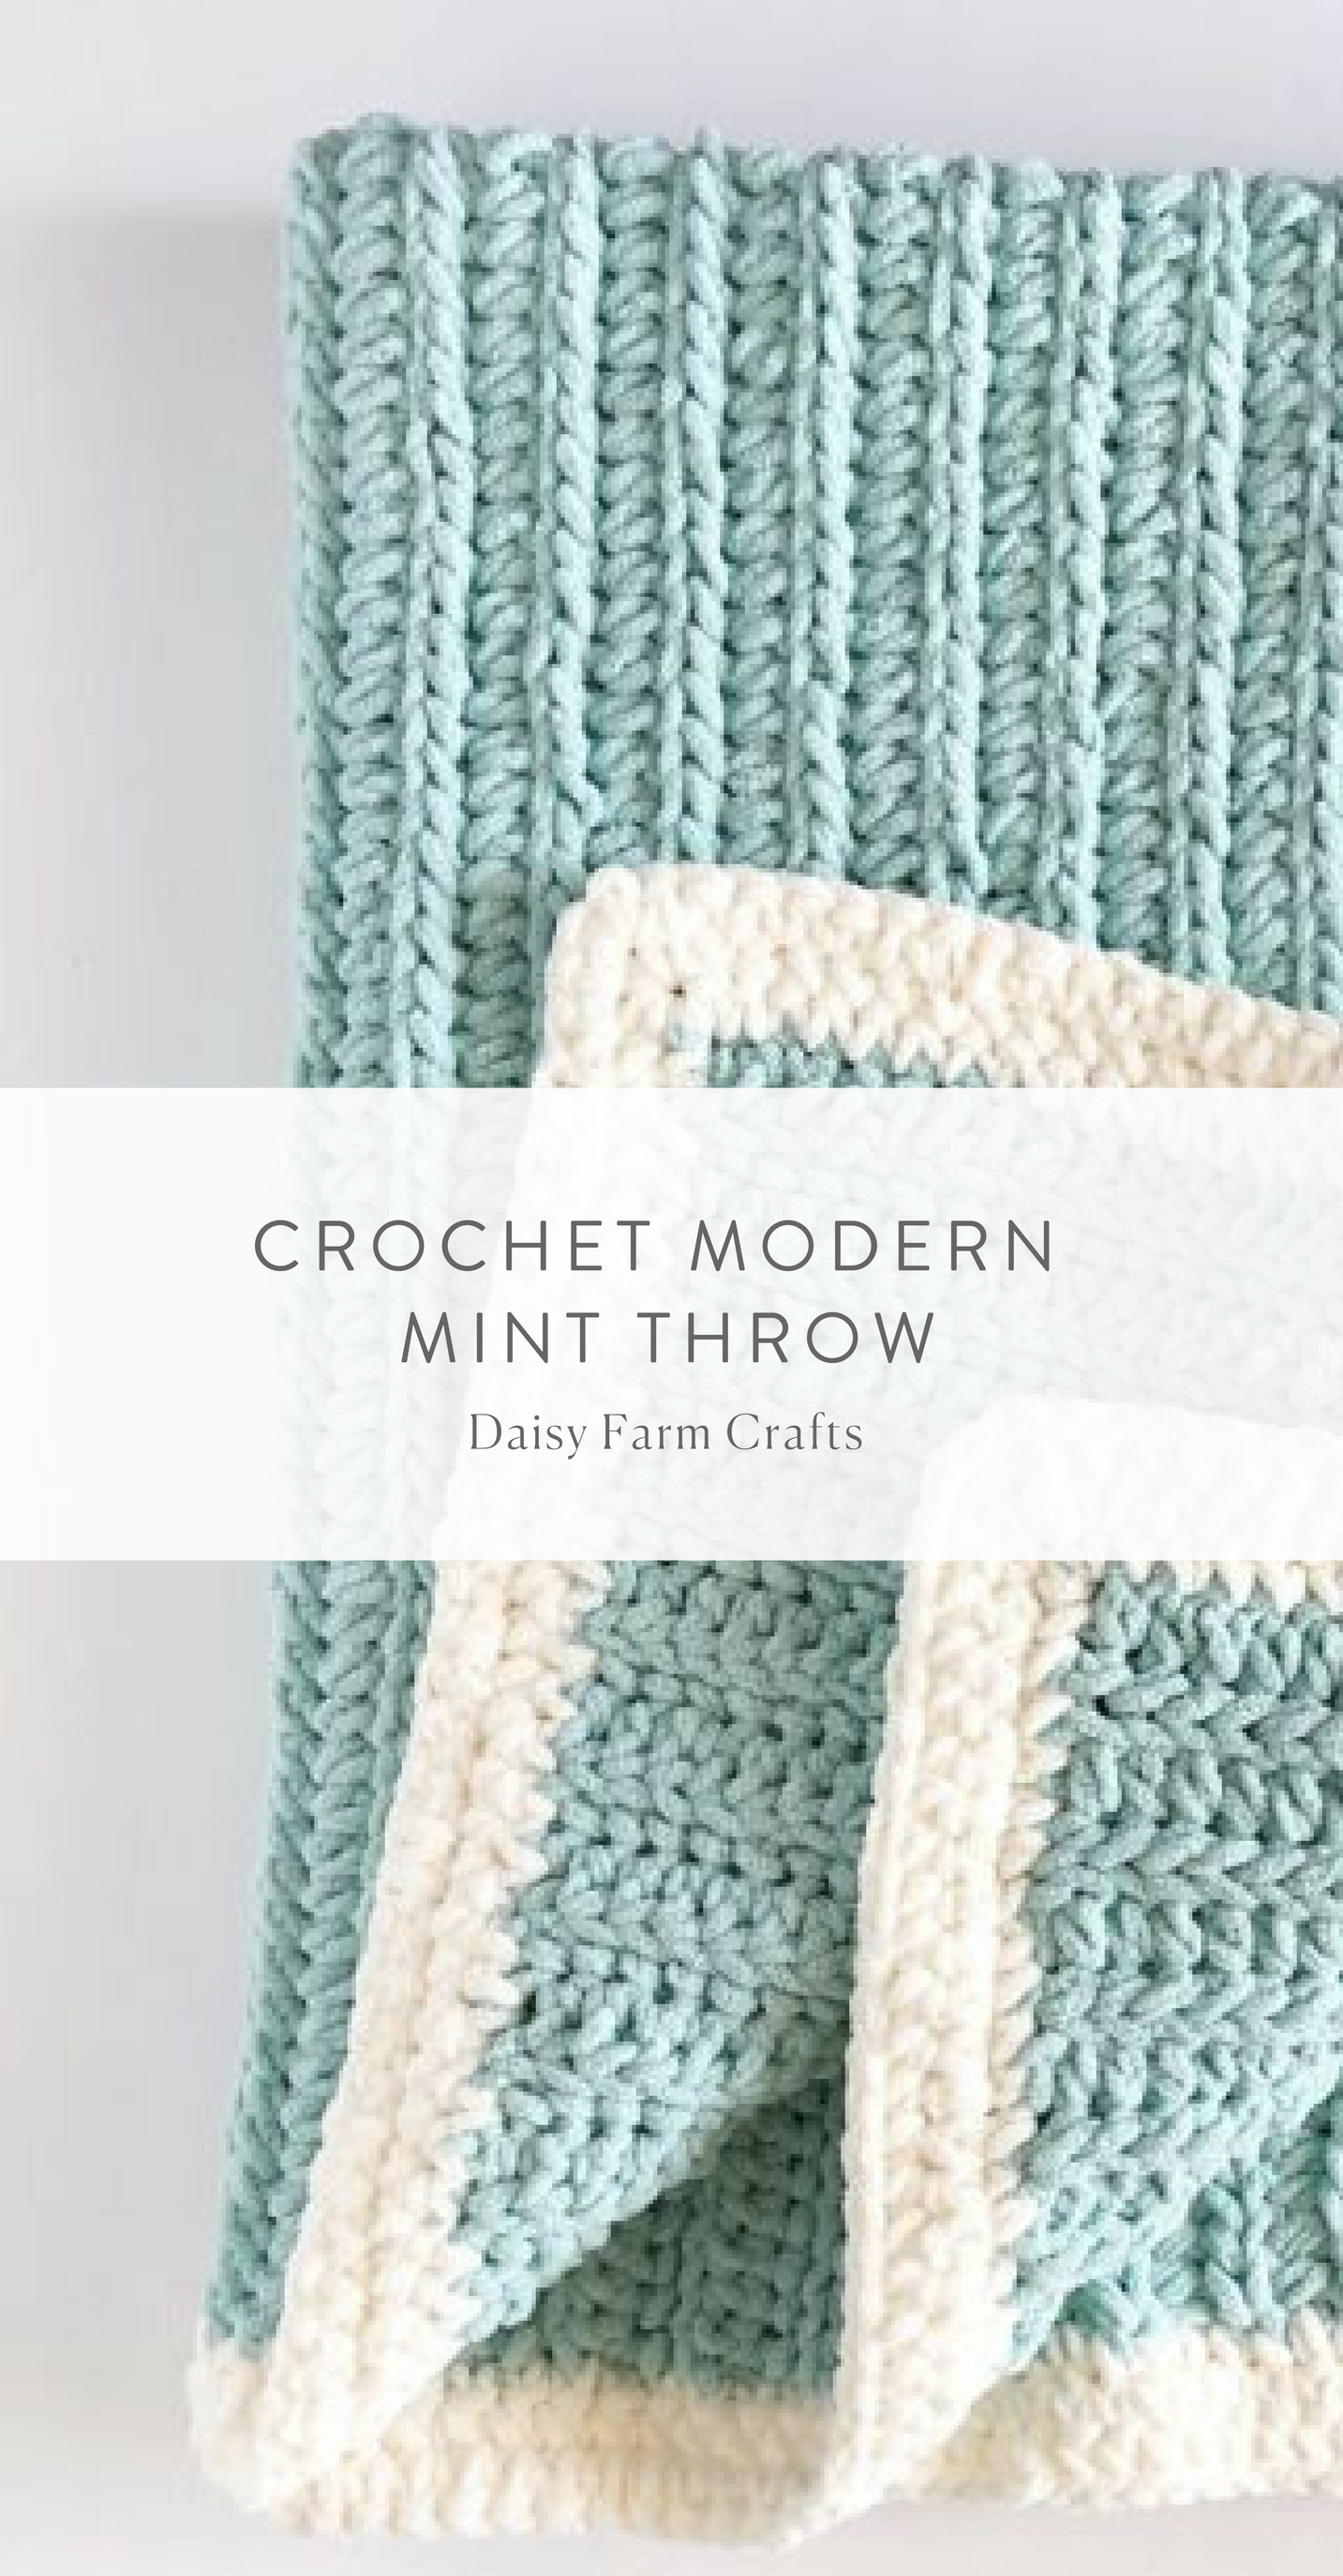 Free Pattern - Crochet Modern Mint Throw | Crochet | Pinterest ...